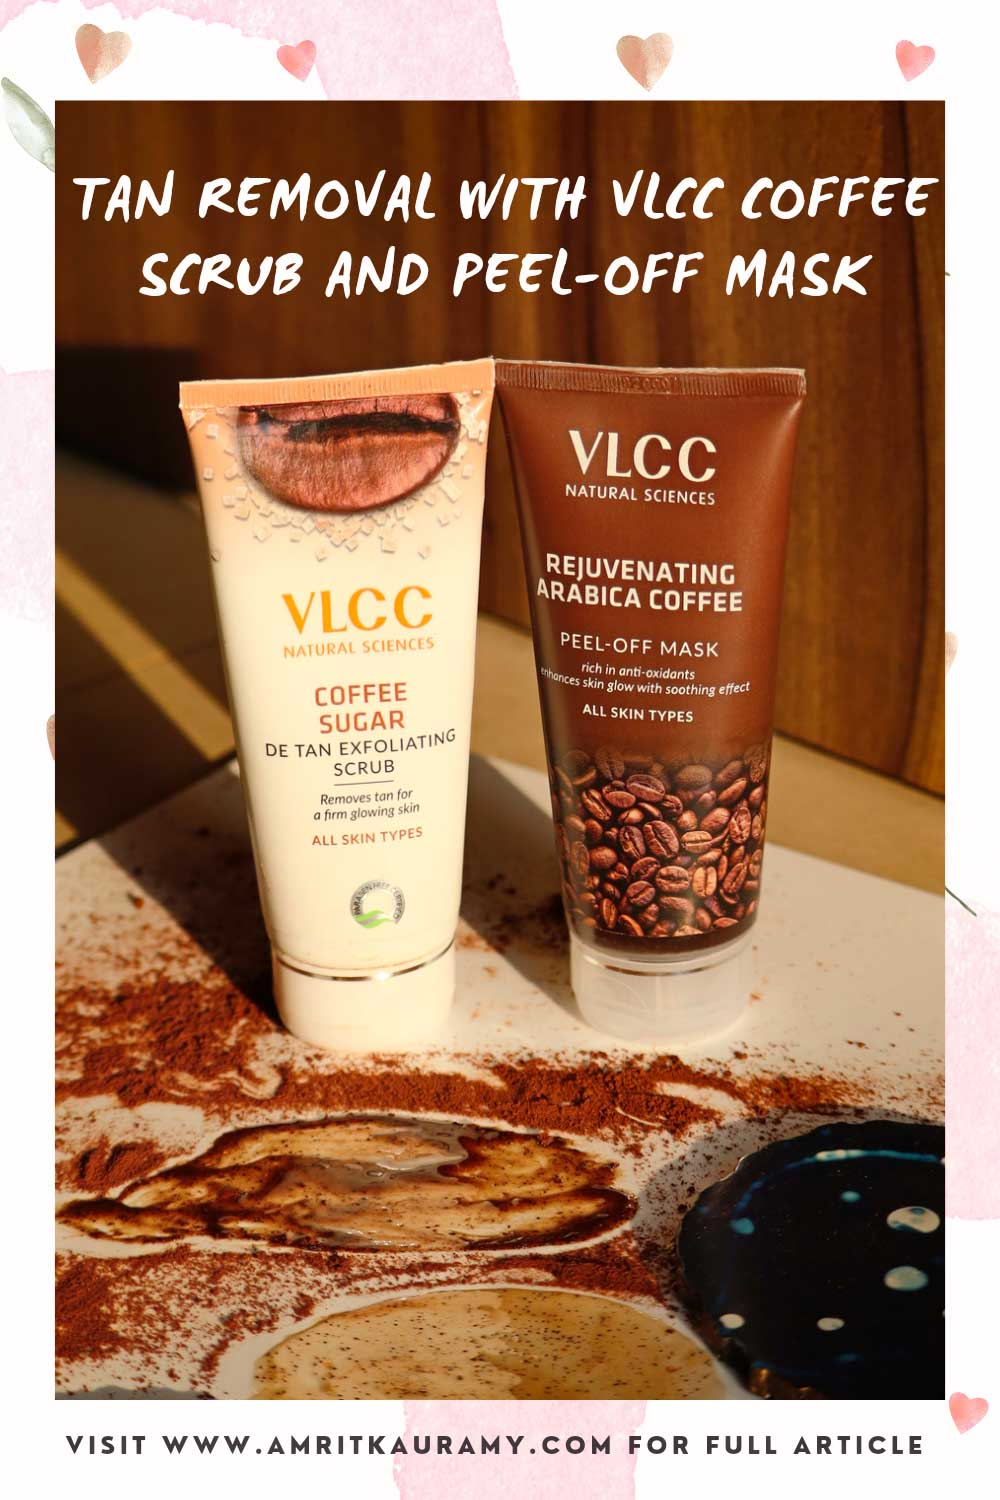 VLCC Coffee Sugar Scrub and Arabica Coffee Peel-off Mask Pinterest